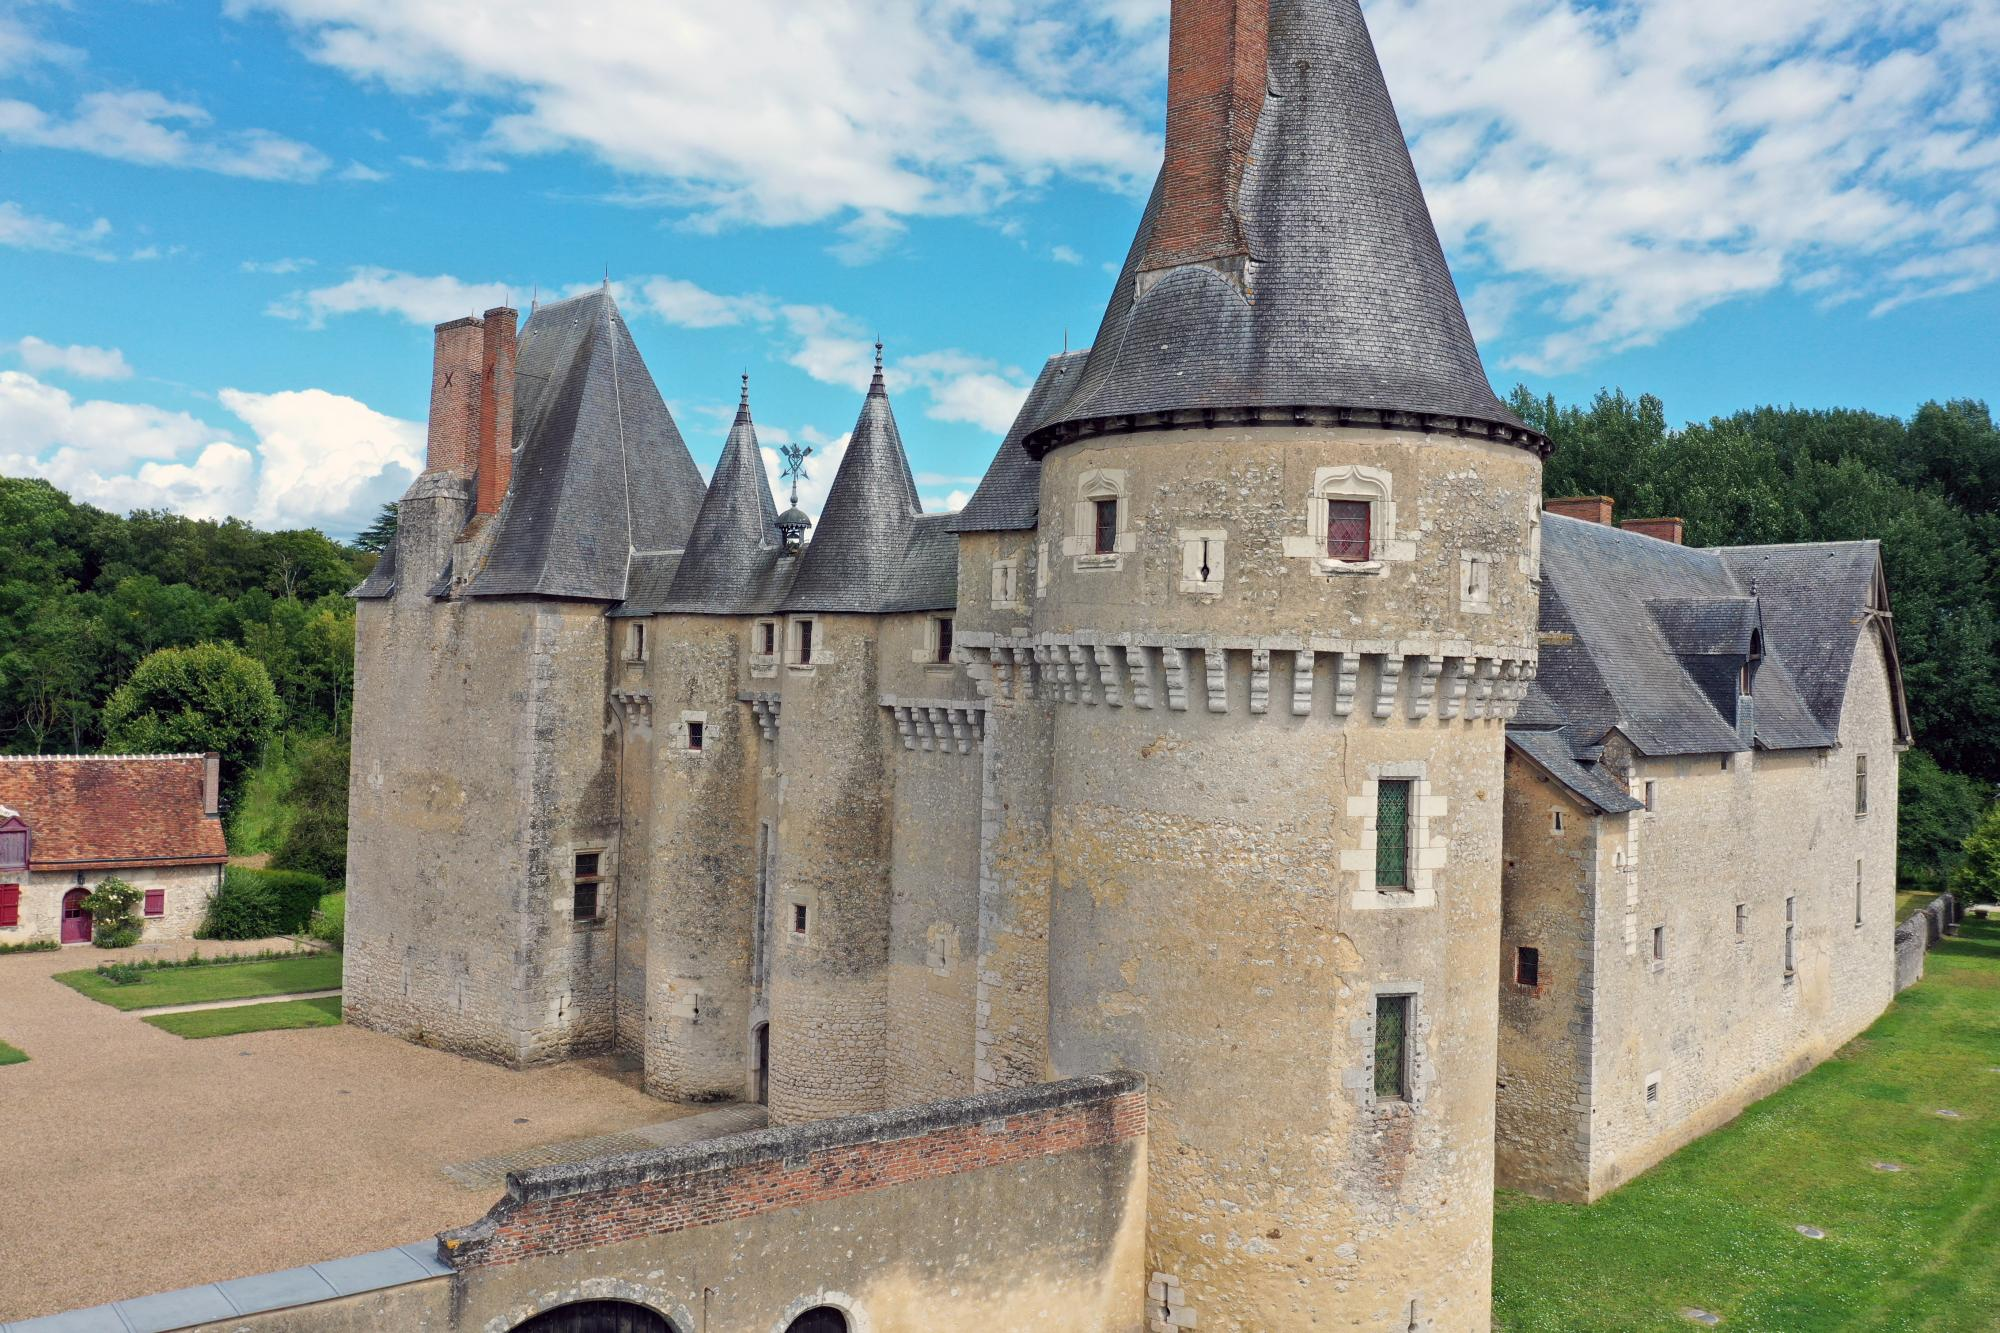 Discover The Valley of Loire - Vacation package : France Coast to Coast  - Land of France, travel agency in France